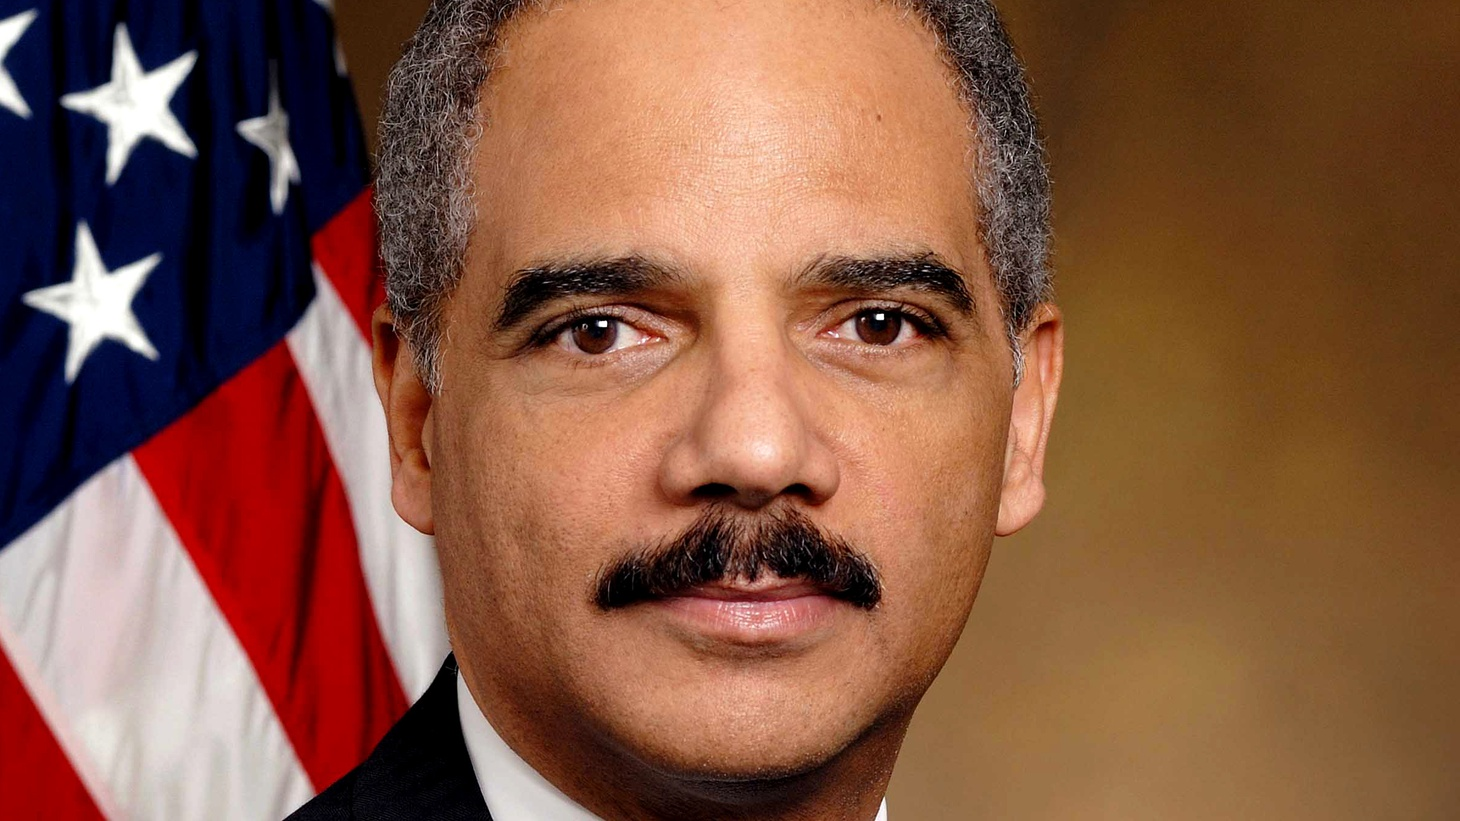 Attorney General Eric Holder announced he's resigning today. What track record is he leaving behind, and who might replace him?